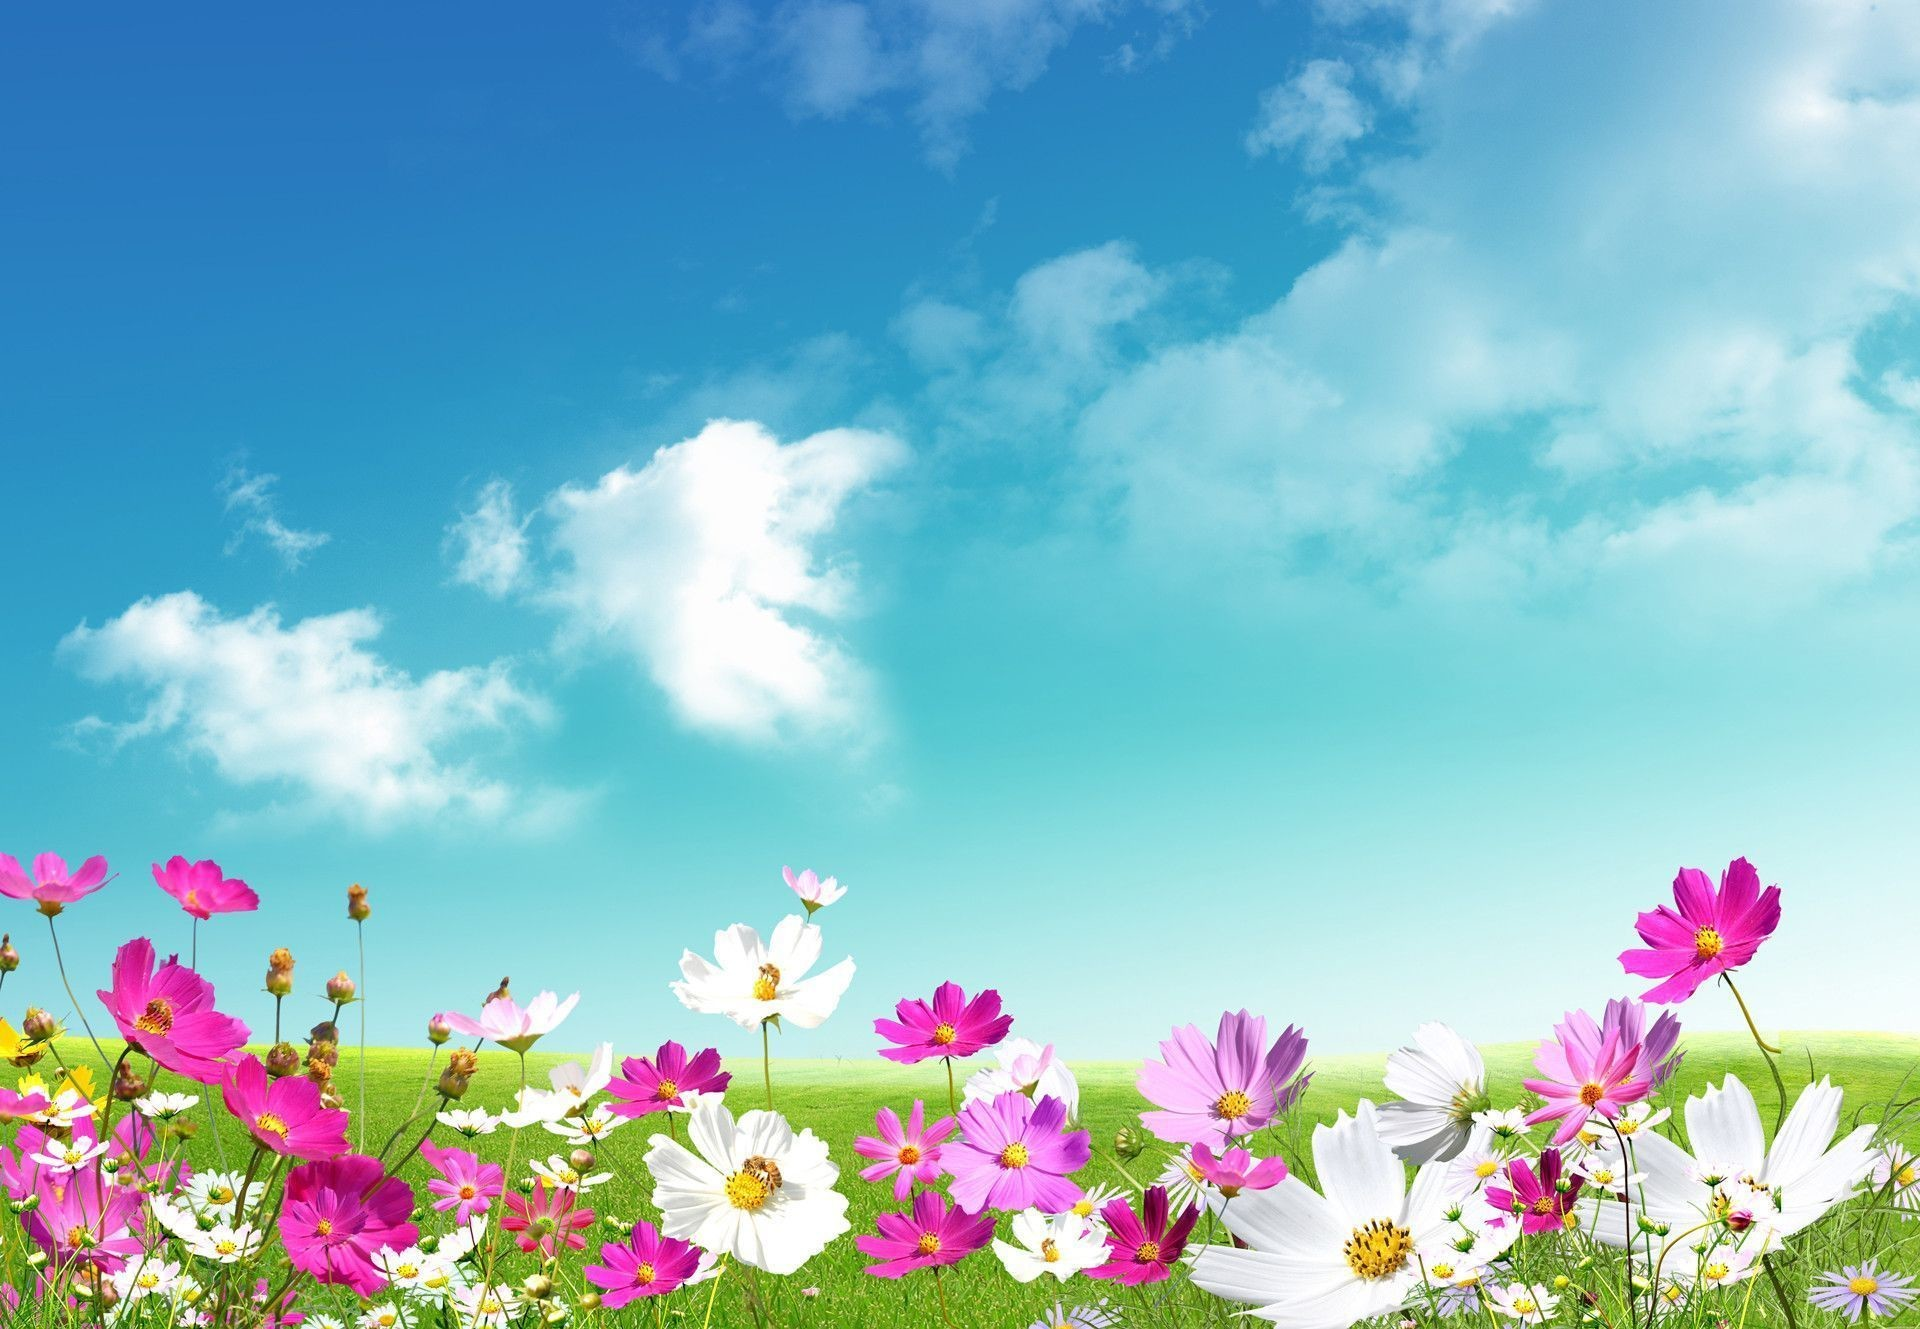 Free Computer Backgrounds For Spring